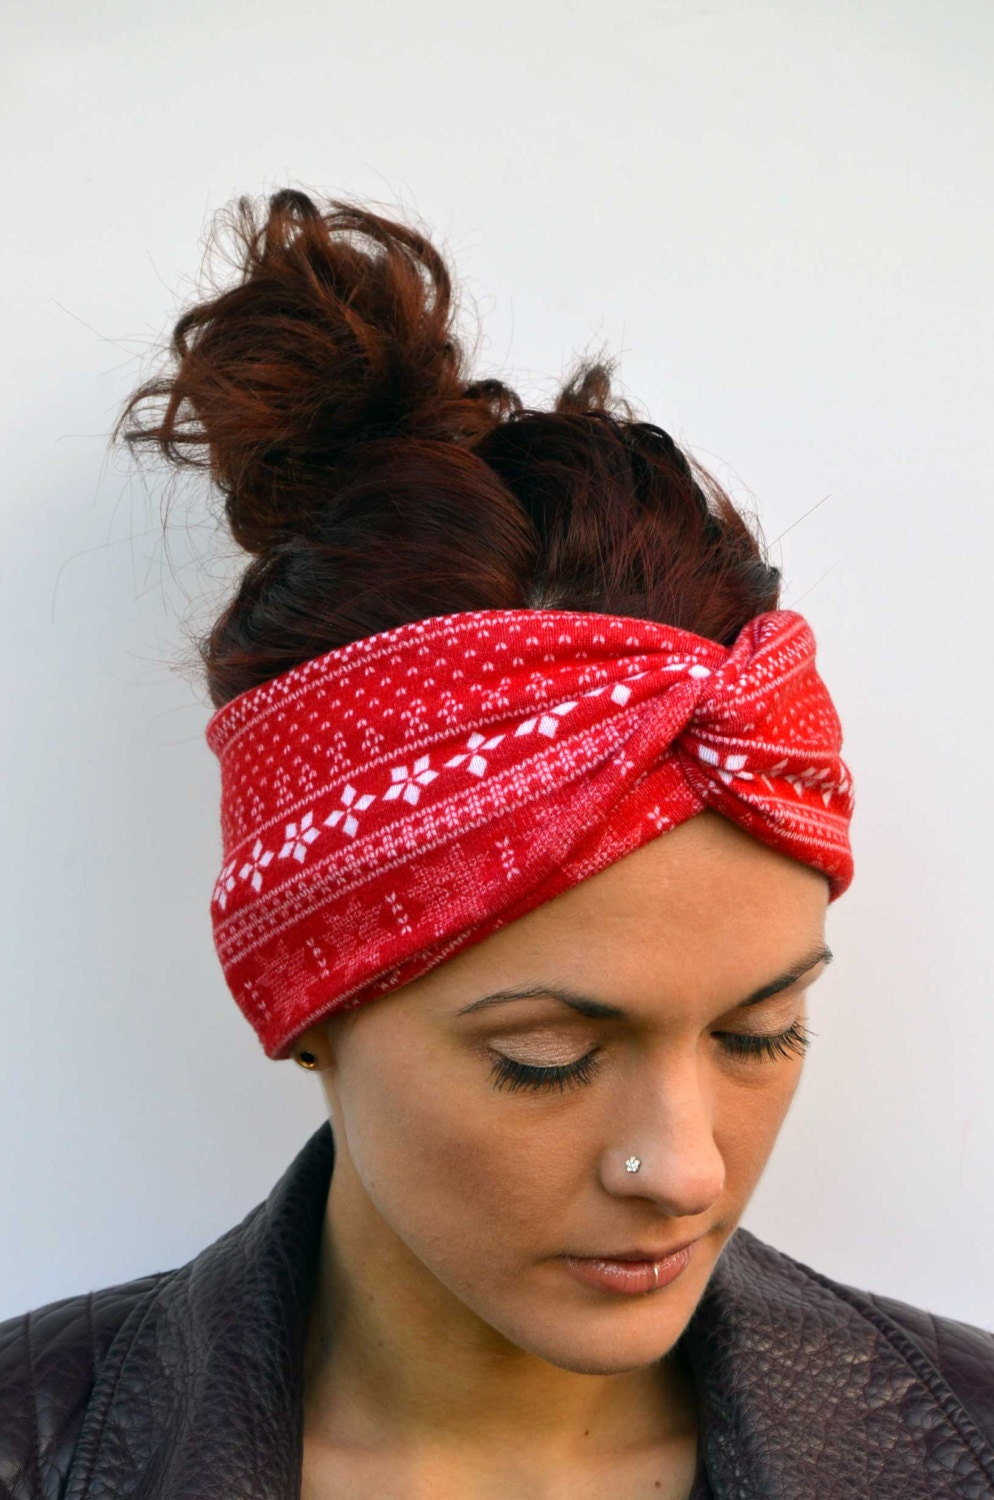 Nordic Headband Knitting Pattern : Nordic print ski headband turband twisted headband running